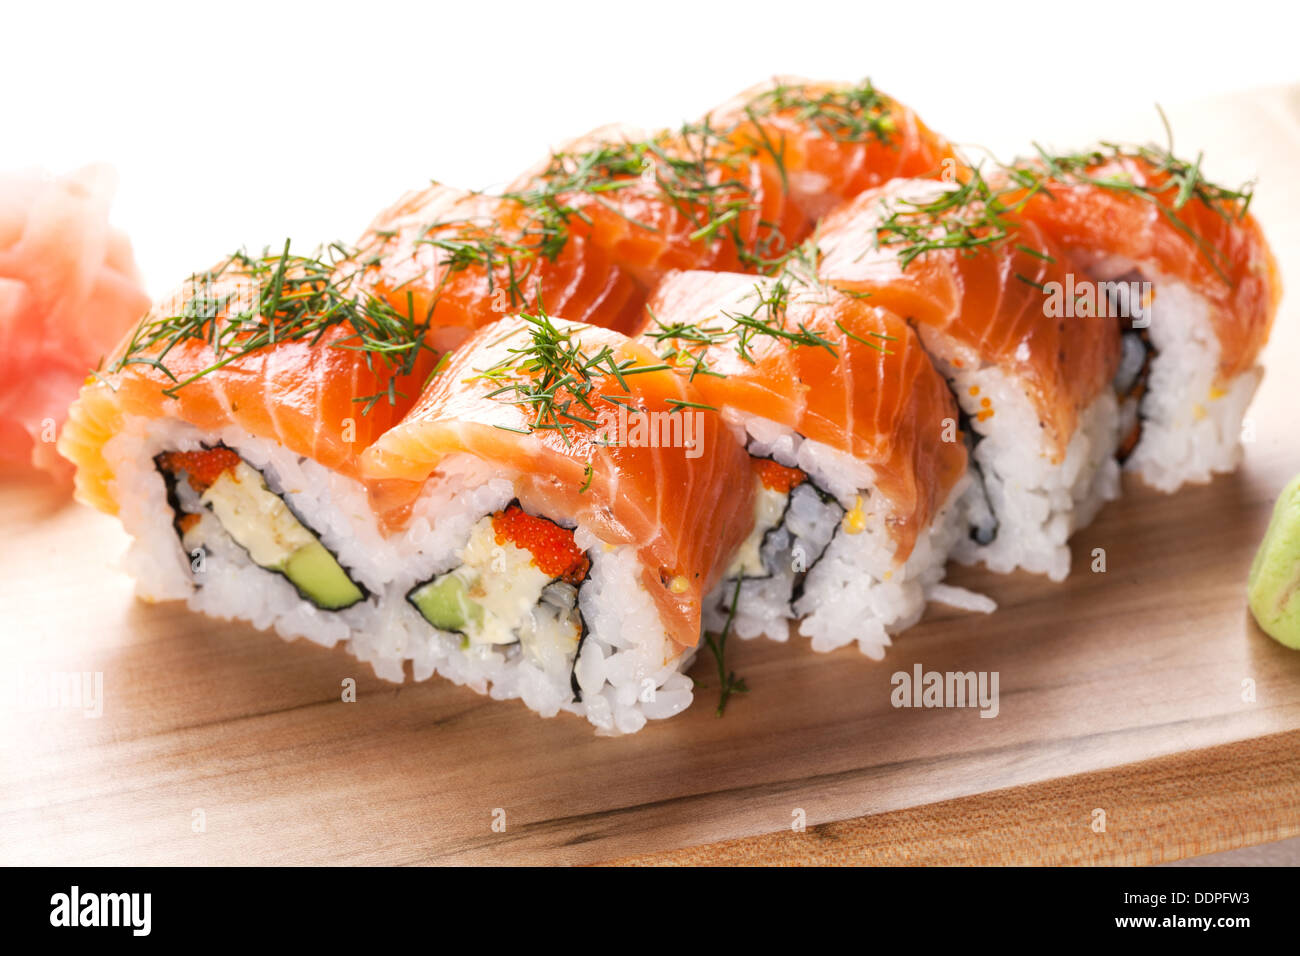 Salmon sushi rolls on wooden plate. - Stock Image